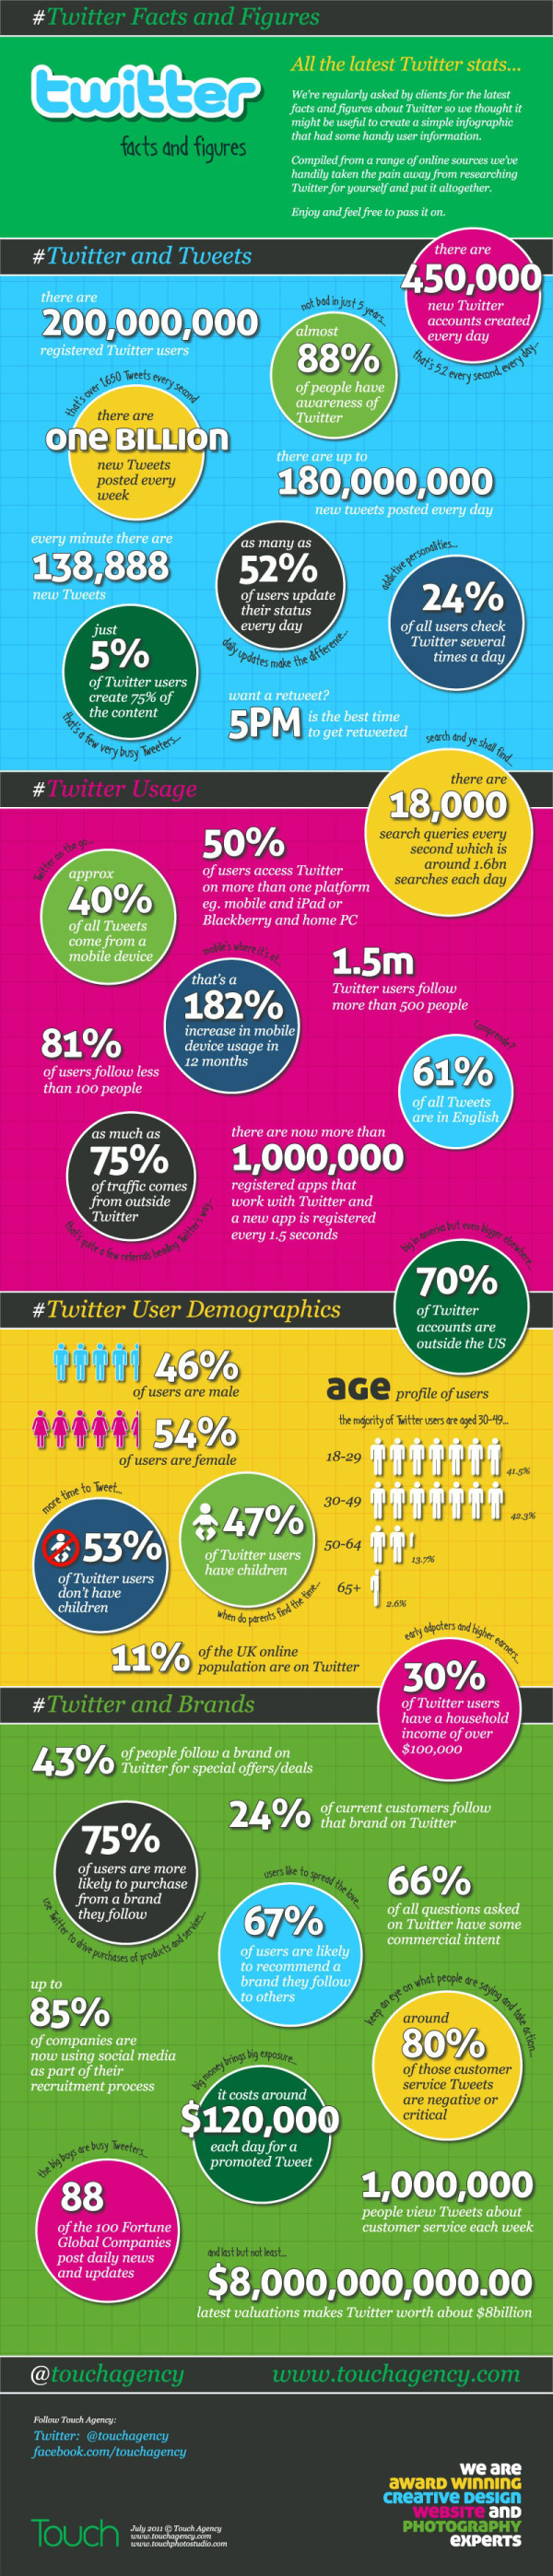 Twitter Facts and Figures resized 600